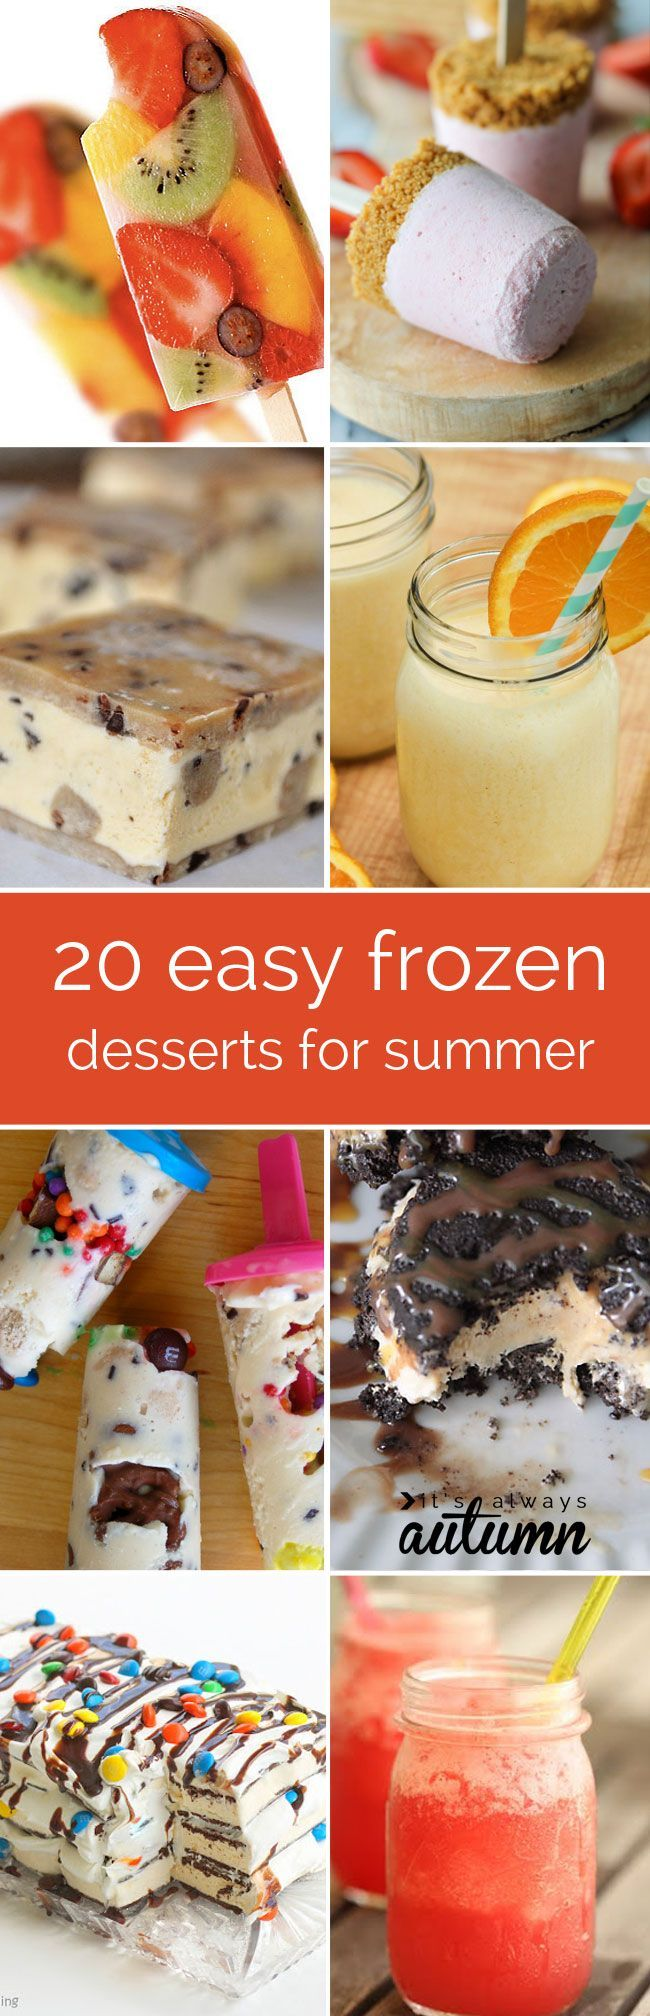 20 quick, easy, frozen treats for summer - no need to heat up the house with the oven. I can't wait to try #6!